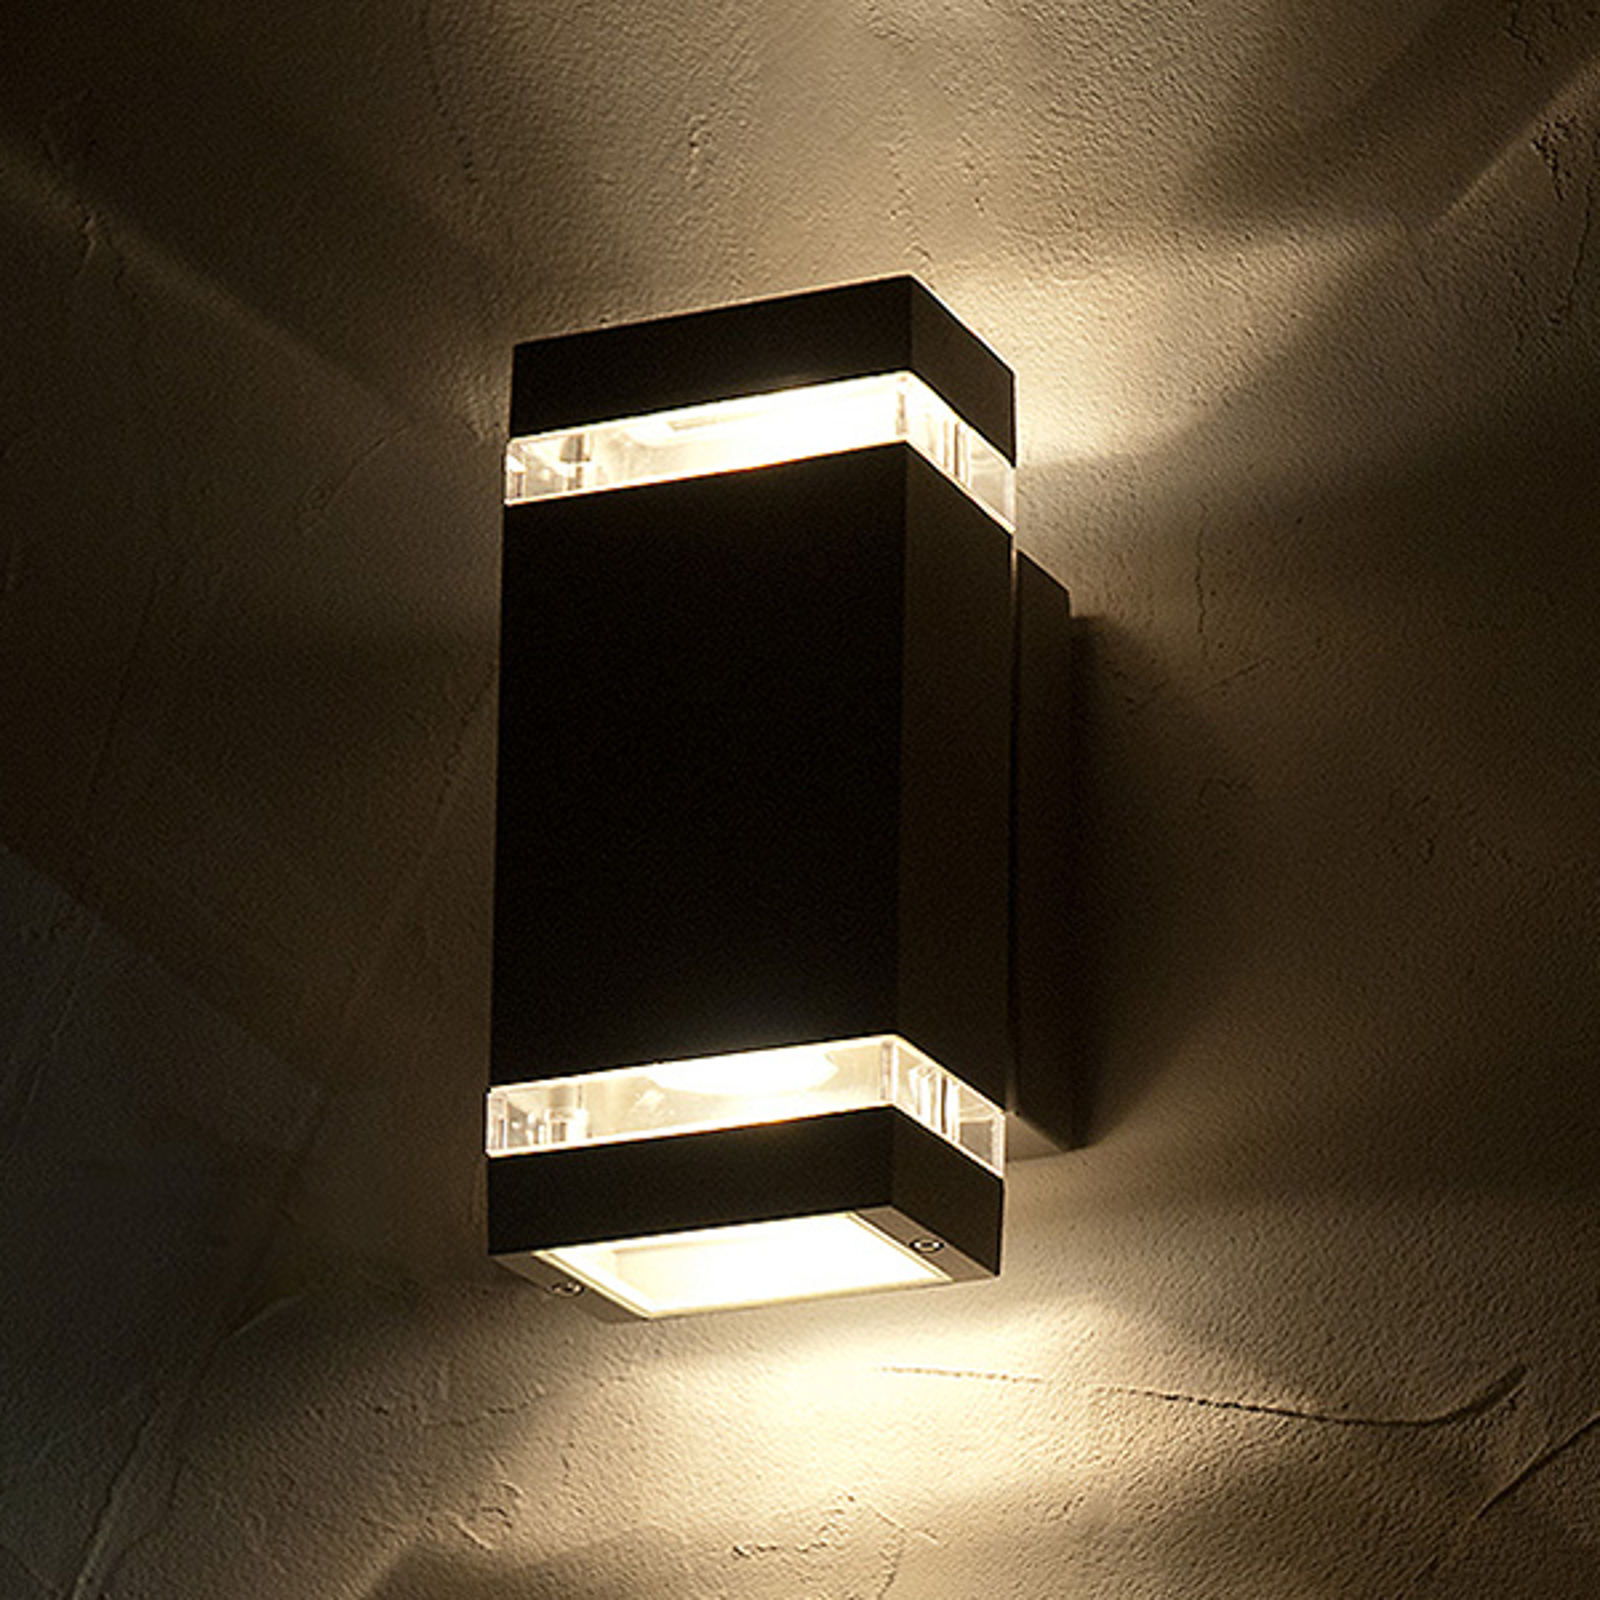 Rectangular-shaped FOCUS LED exterior wall light_3006128_1